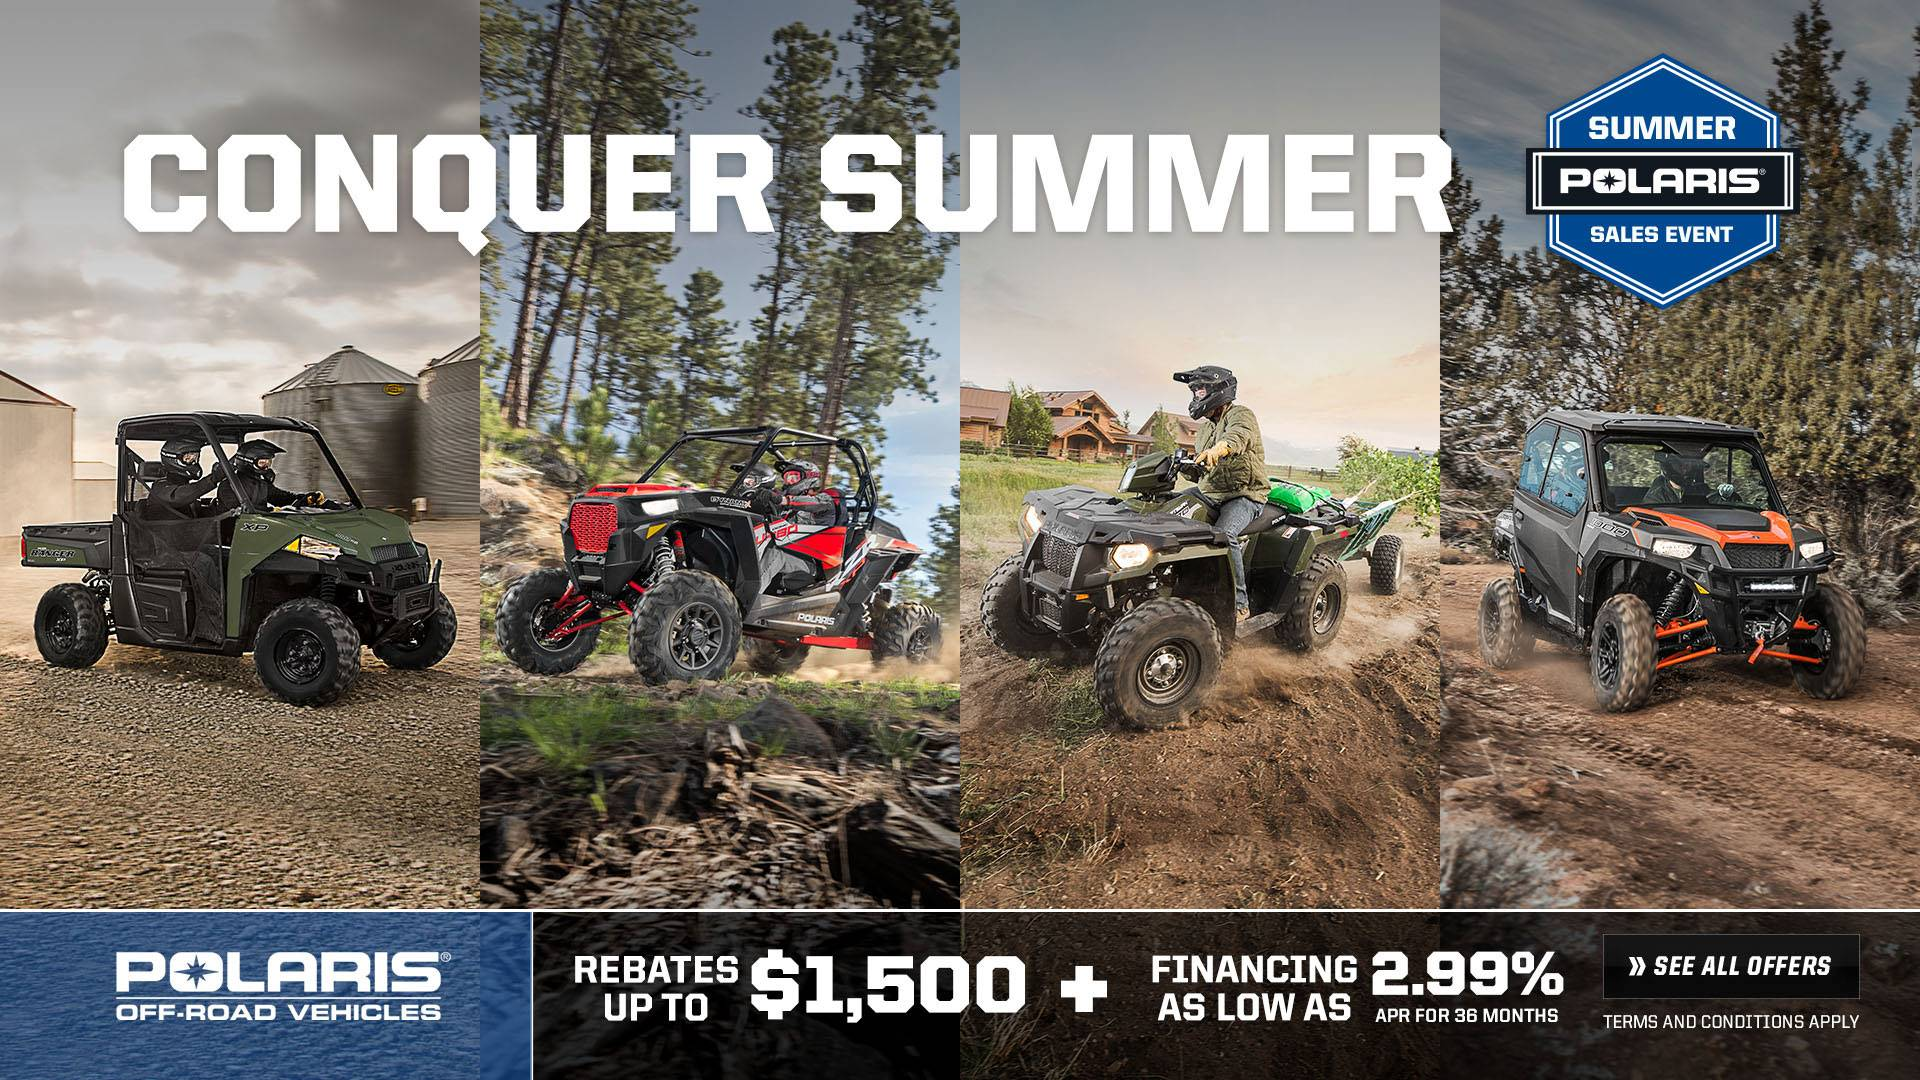 Polaris Summer Sales Event